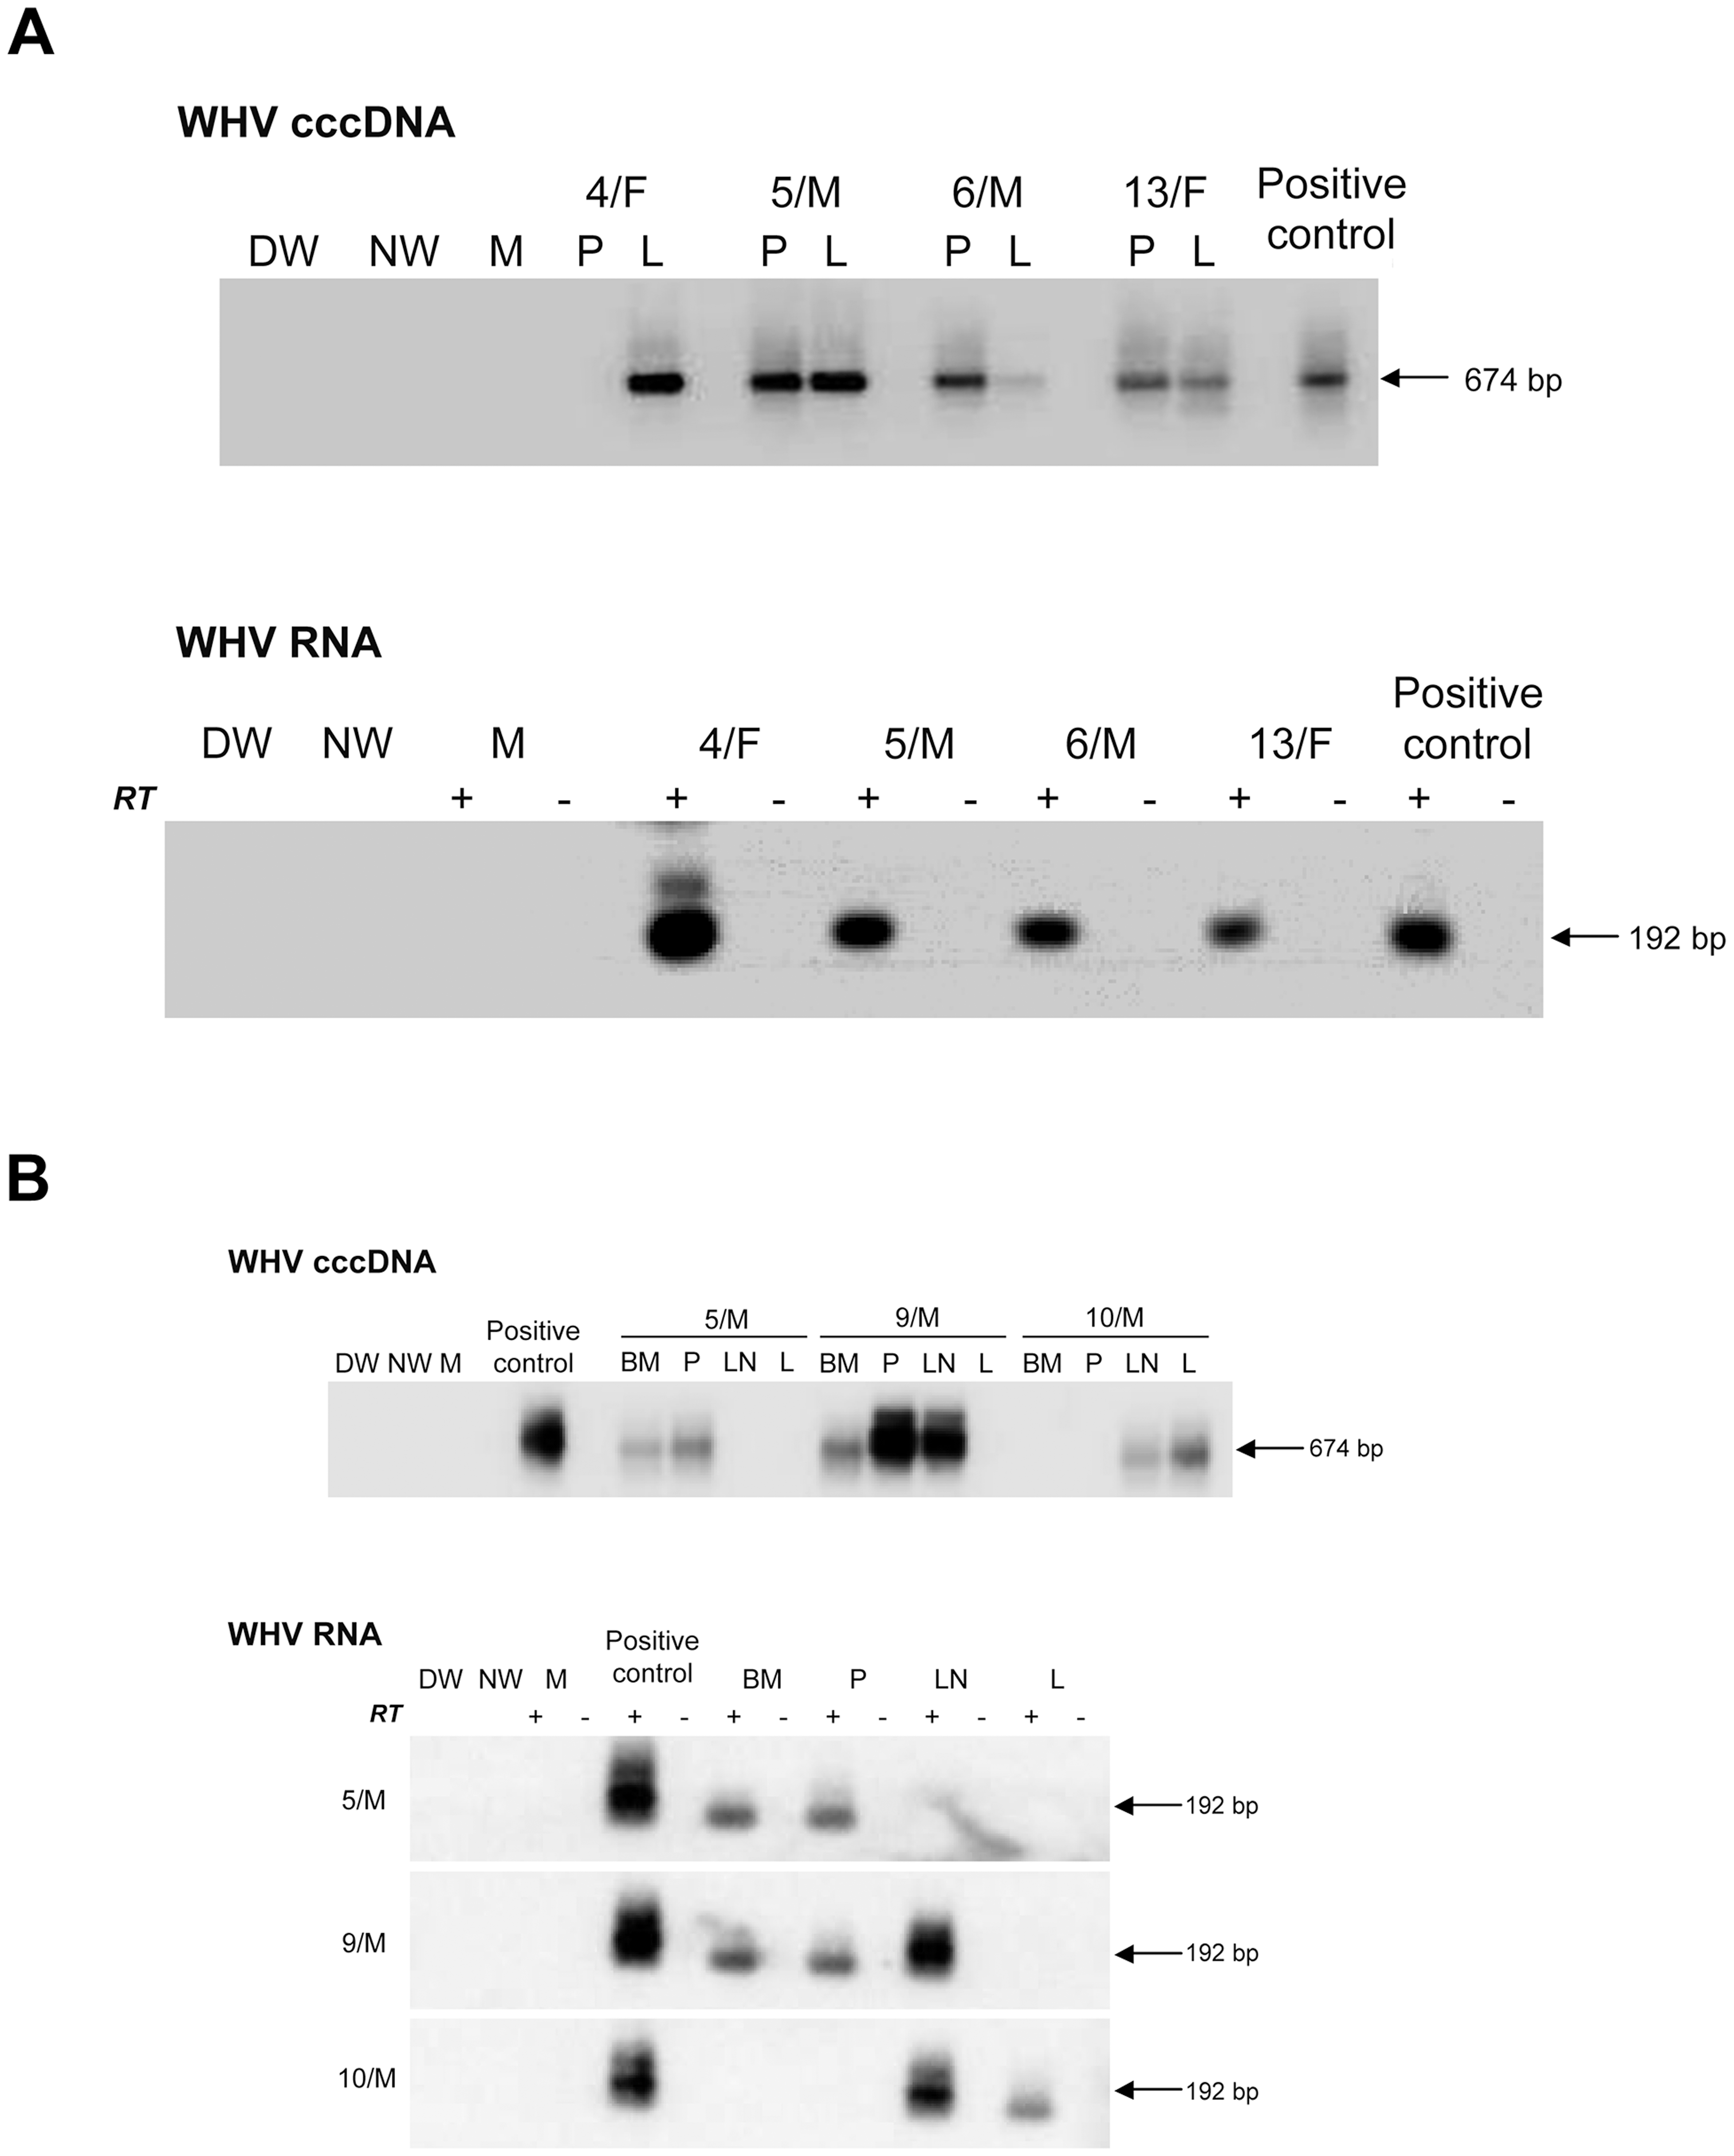 Detection of WHV cccDNA and RNA in liver and lymphoid cell and tissue samples obtained from woodchucks with lifelong POI established after inoculation with 100 virions of WHV/tm3.